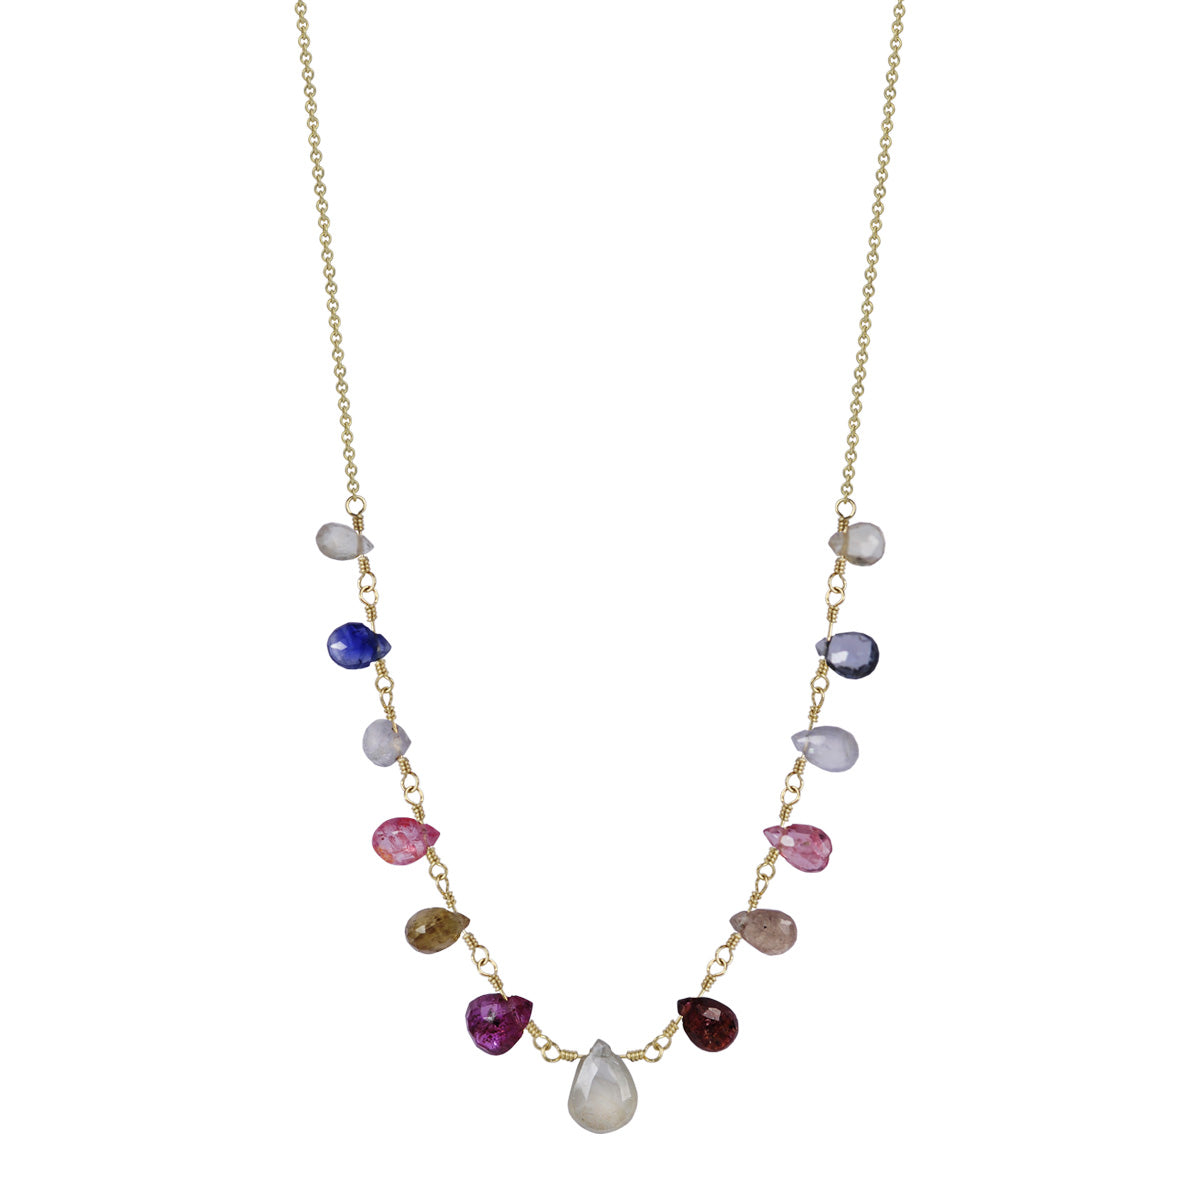 18K Gold 13 Multi Sapphire Teardrops on Chain